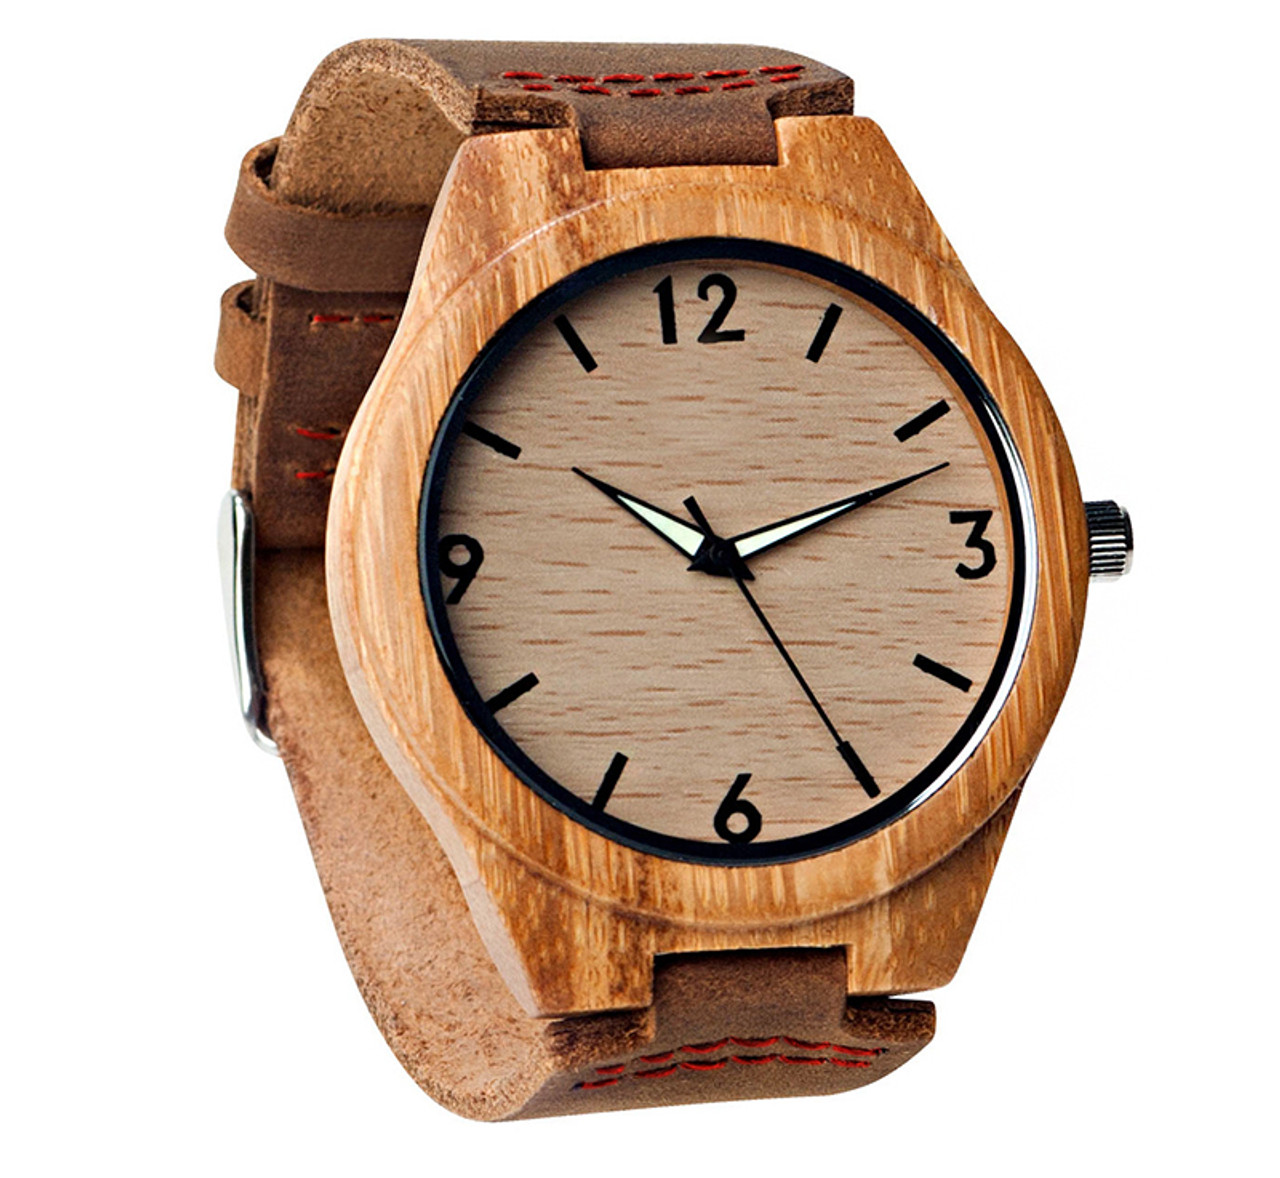 Grpn - Wood Engraved Watch Glow Dials W#68 - Aura